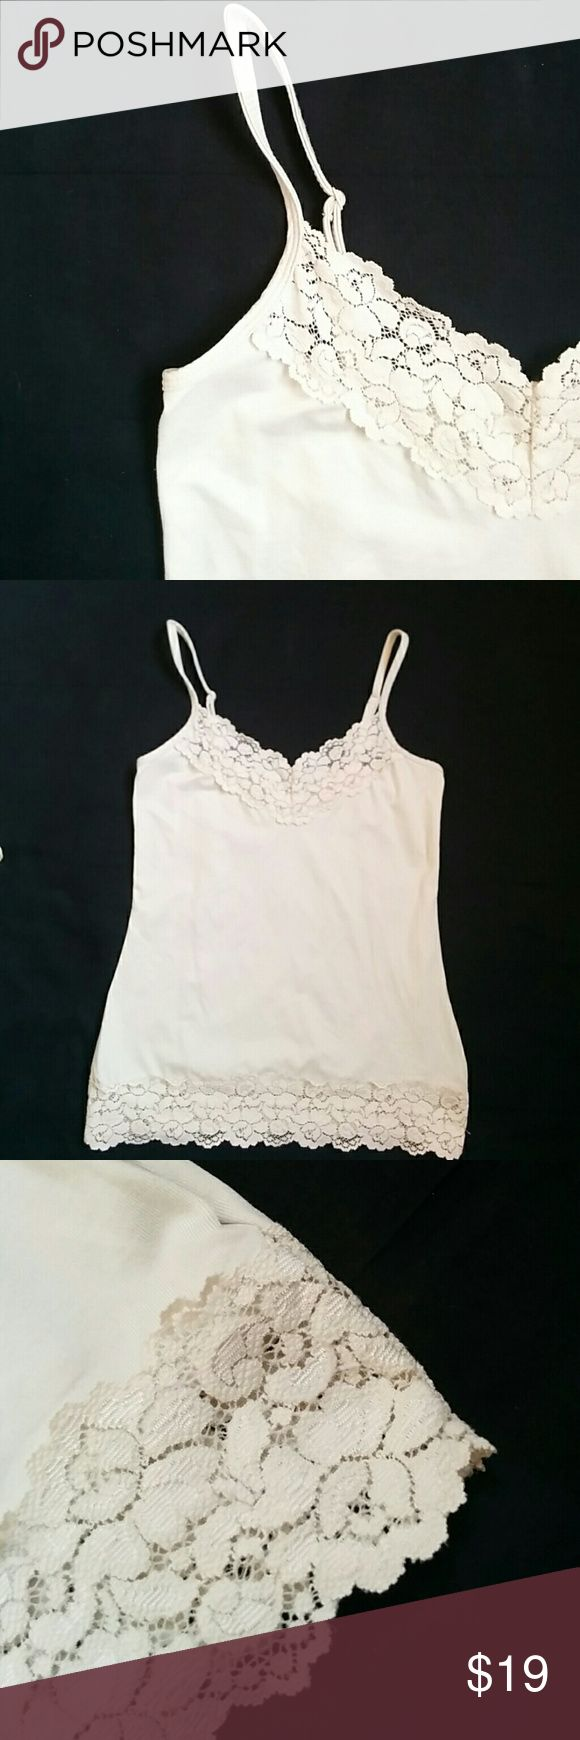 WHBM Cami -XS Neutral Cami with Lace Detail on top and bottom. Exellent condition, adjustable straps, color is Khaki/Neutral (hard to photo) White House Black Market Tops Camisoles